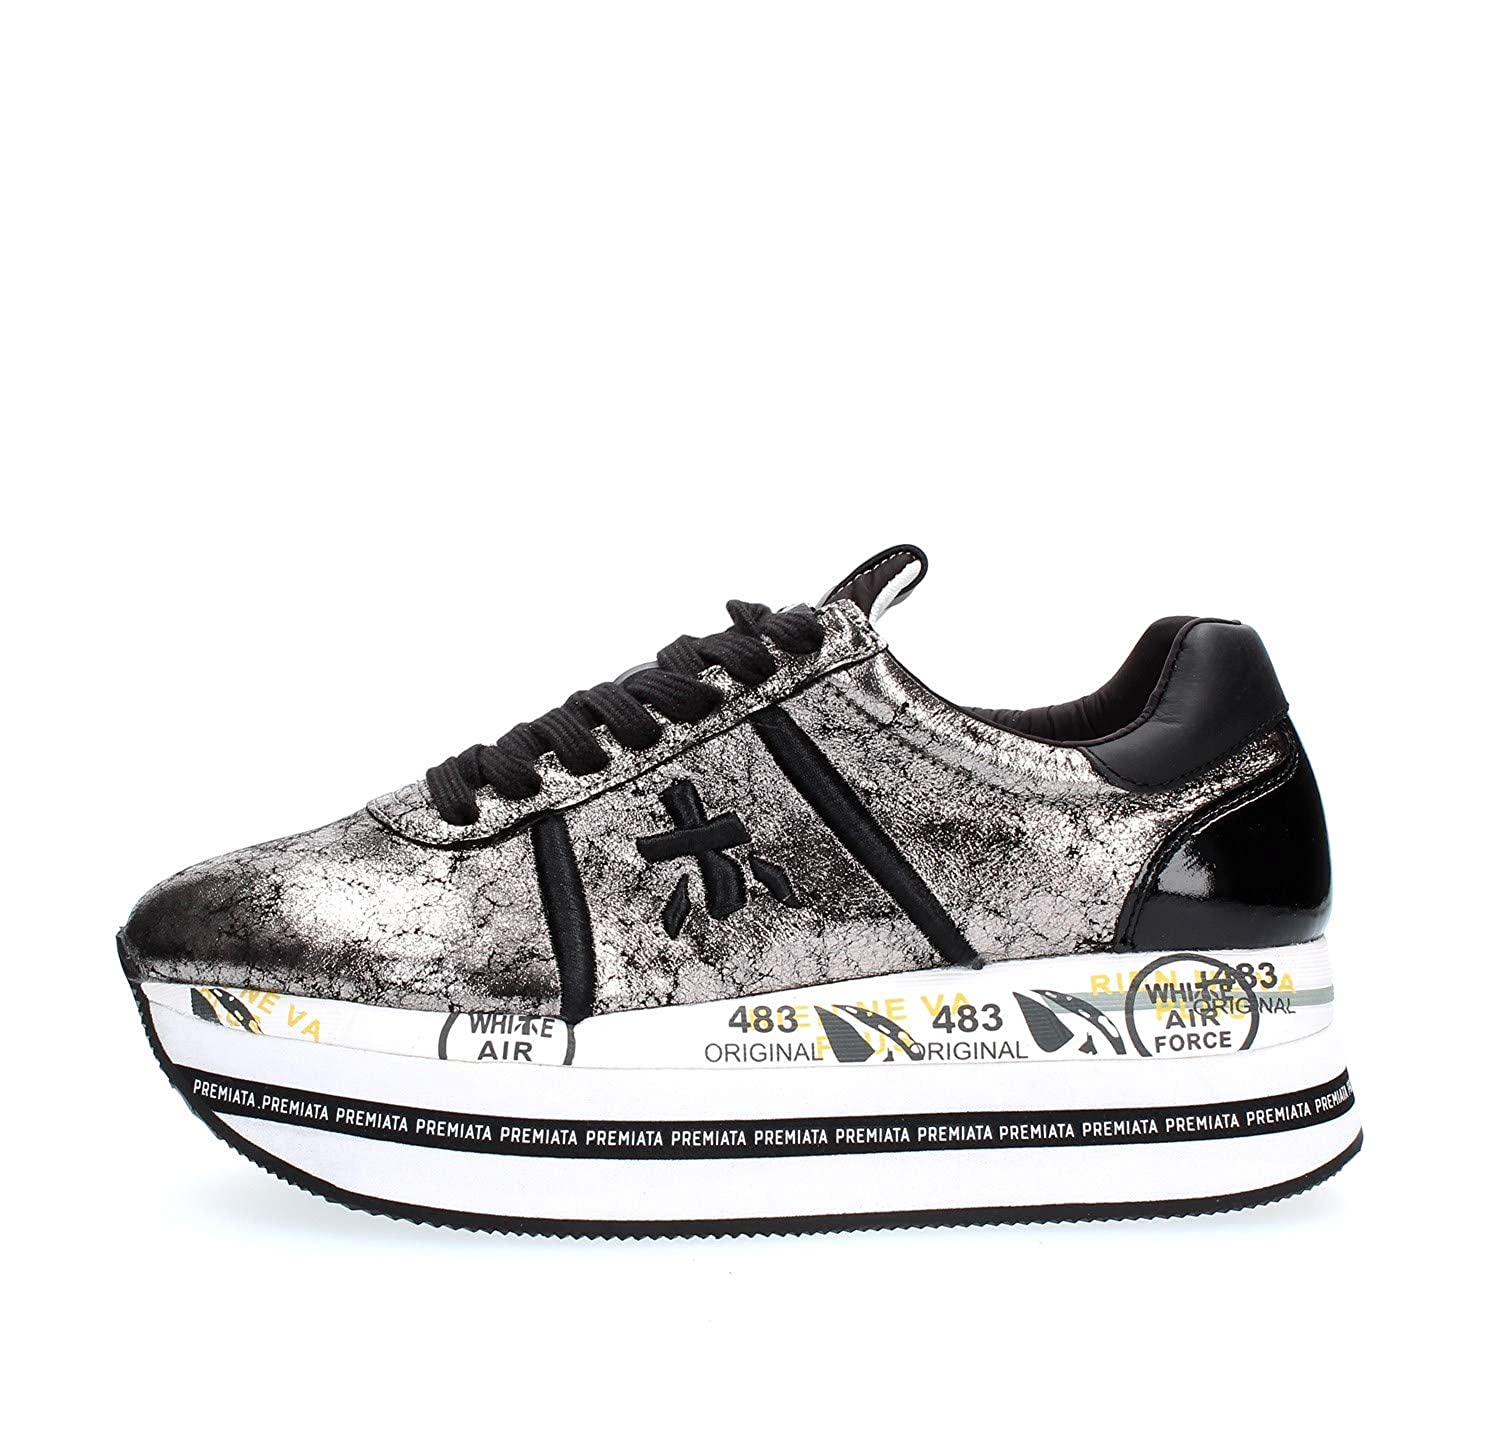 PREMIATA Beth 4120 Sneakers Donna: Amazon.it: Scarpe e borse